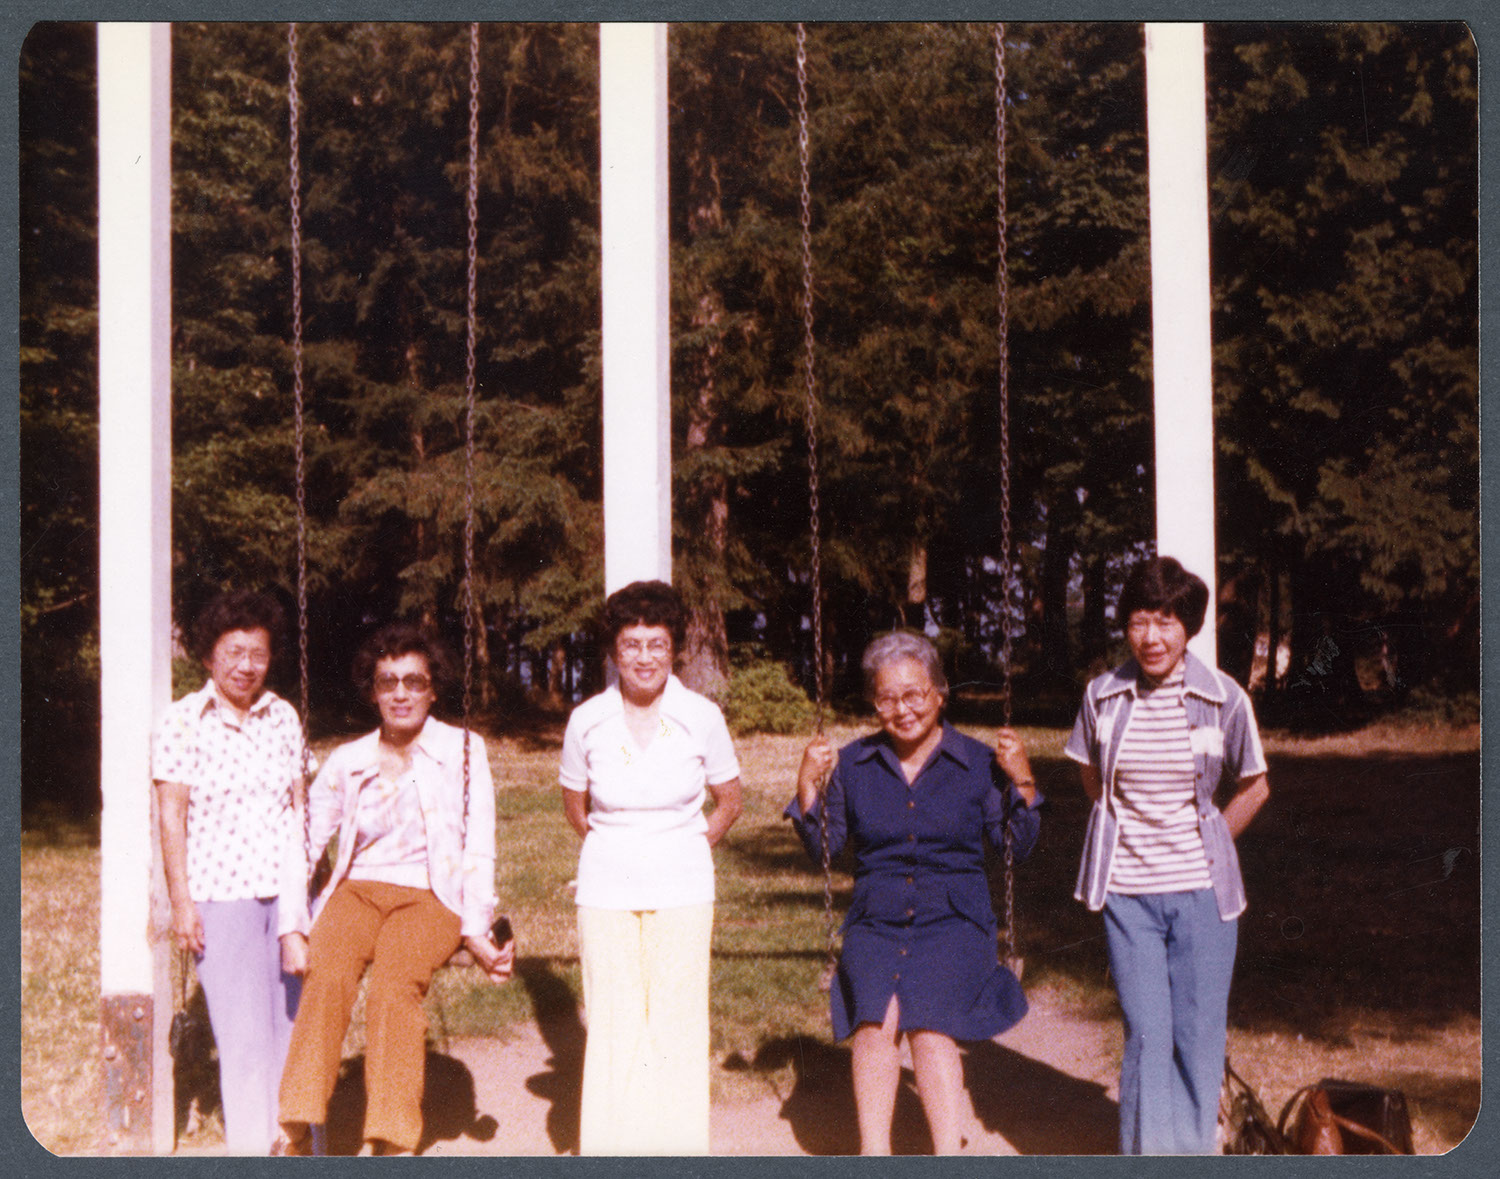 Camp Kwomais, July 29 - August 1, 1977